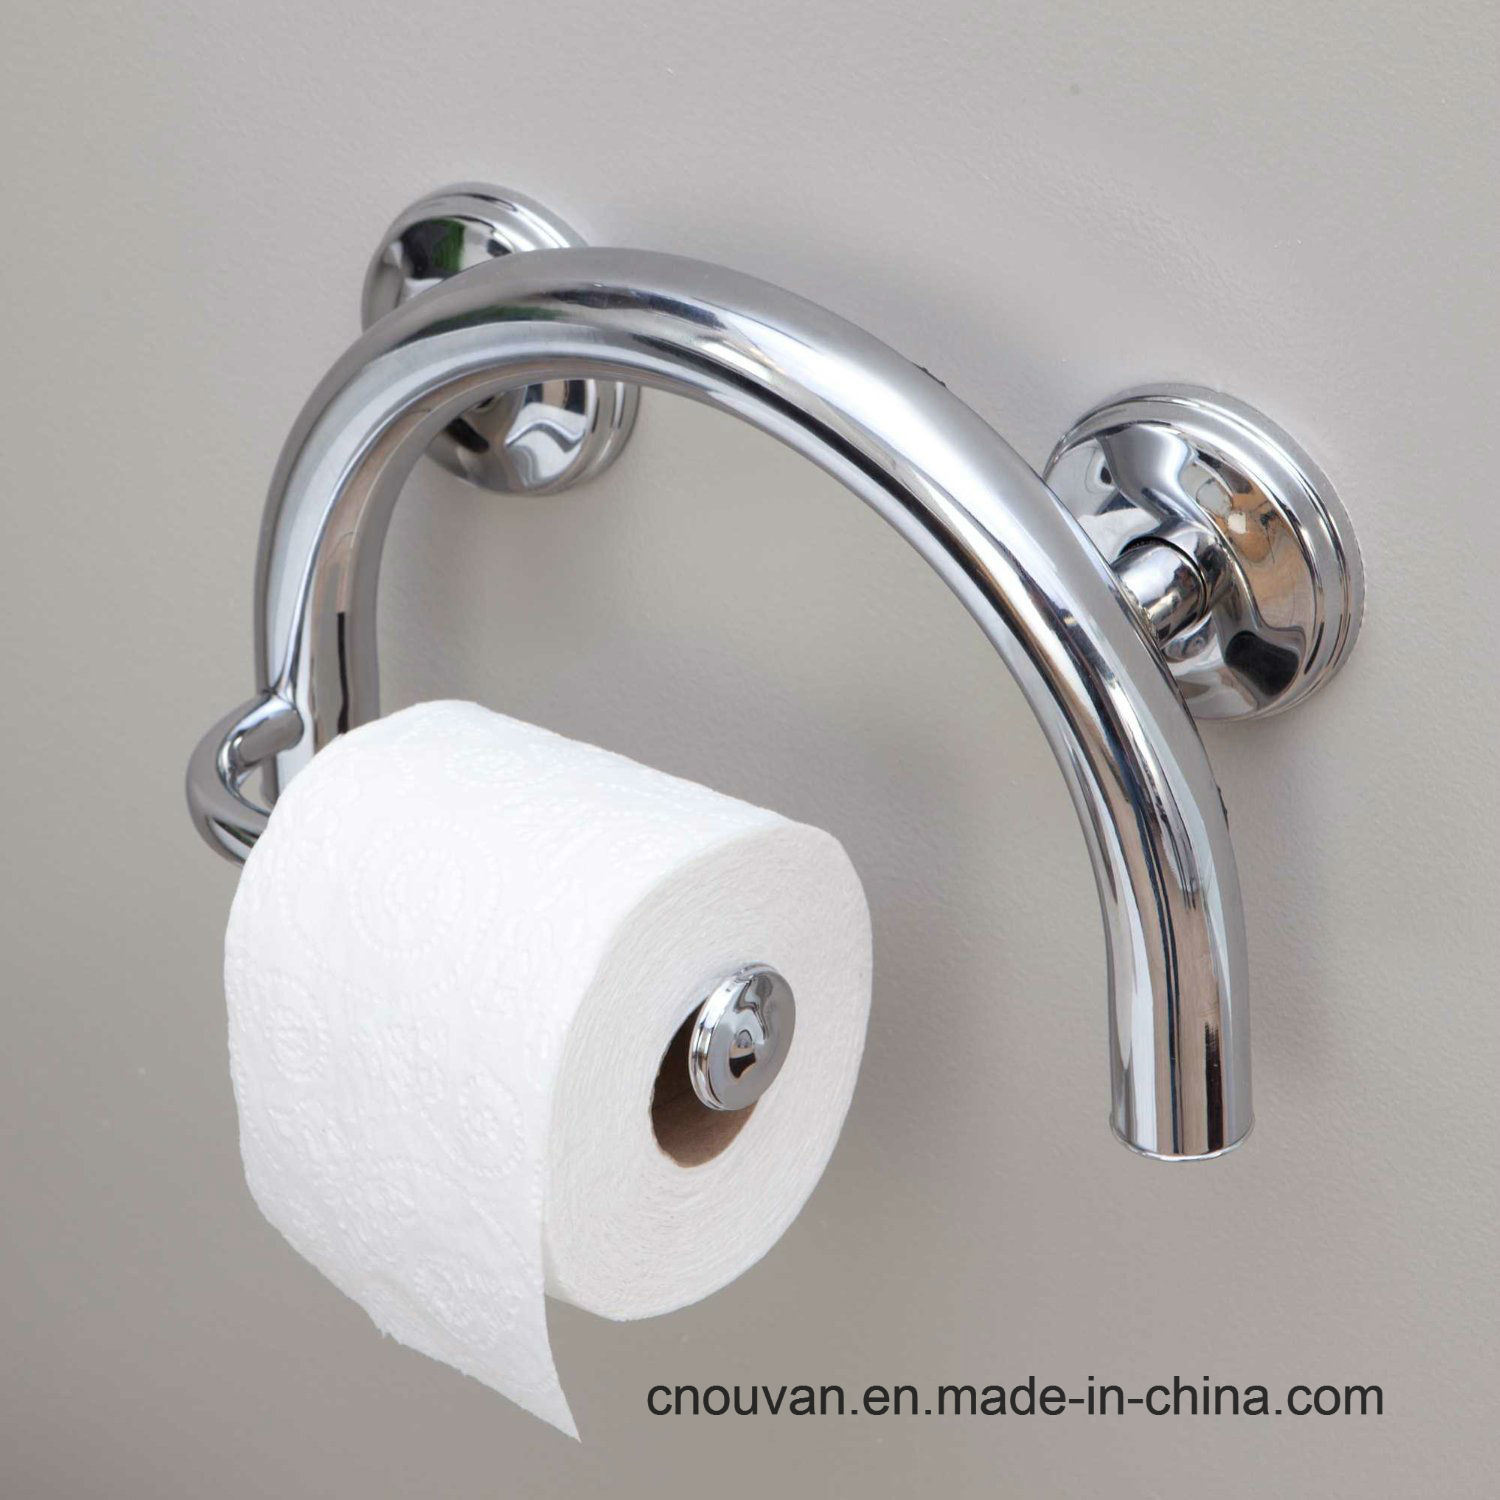 China Grab Bar Toilet Paper Holder With Grips And Anchor